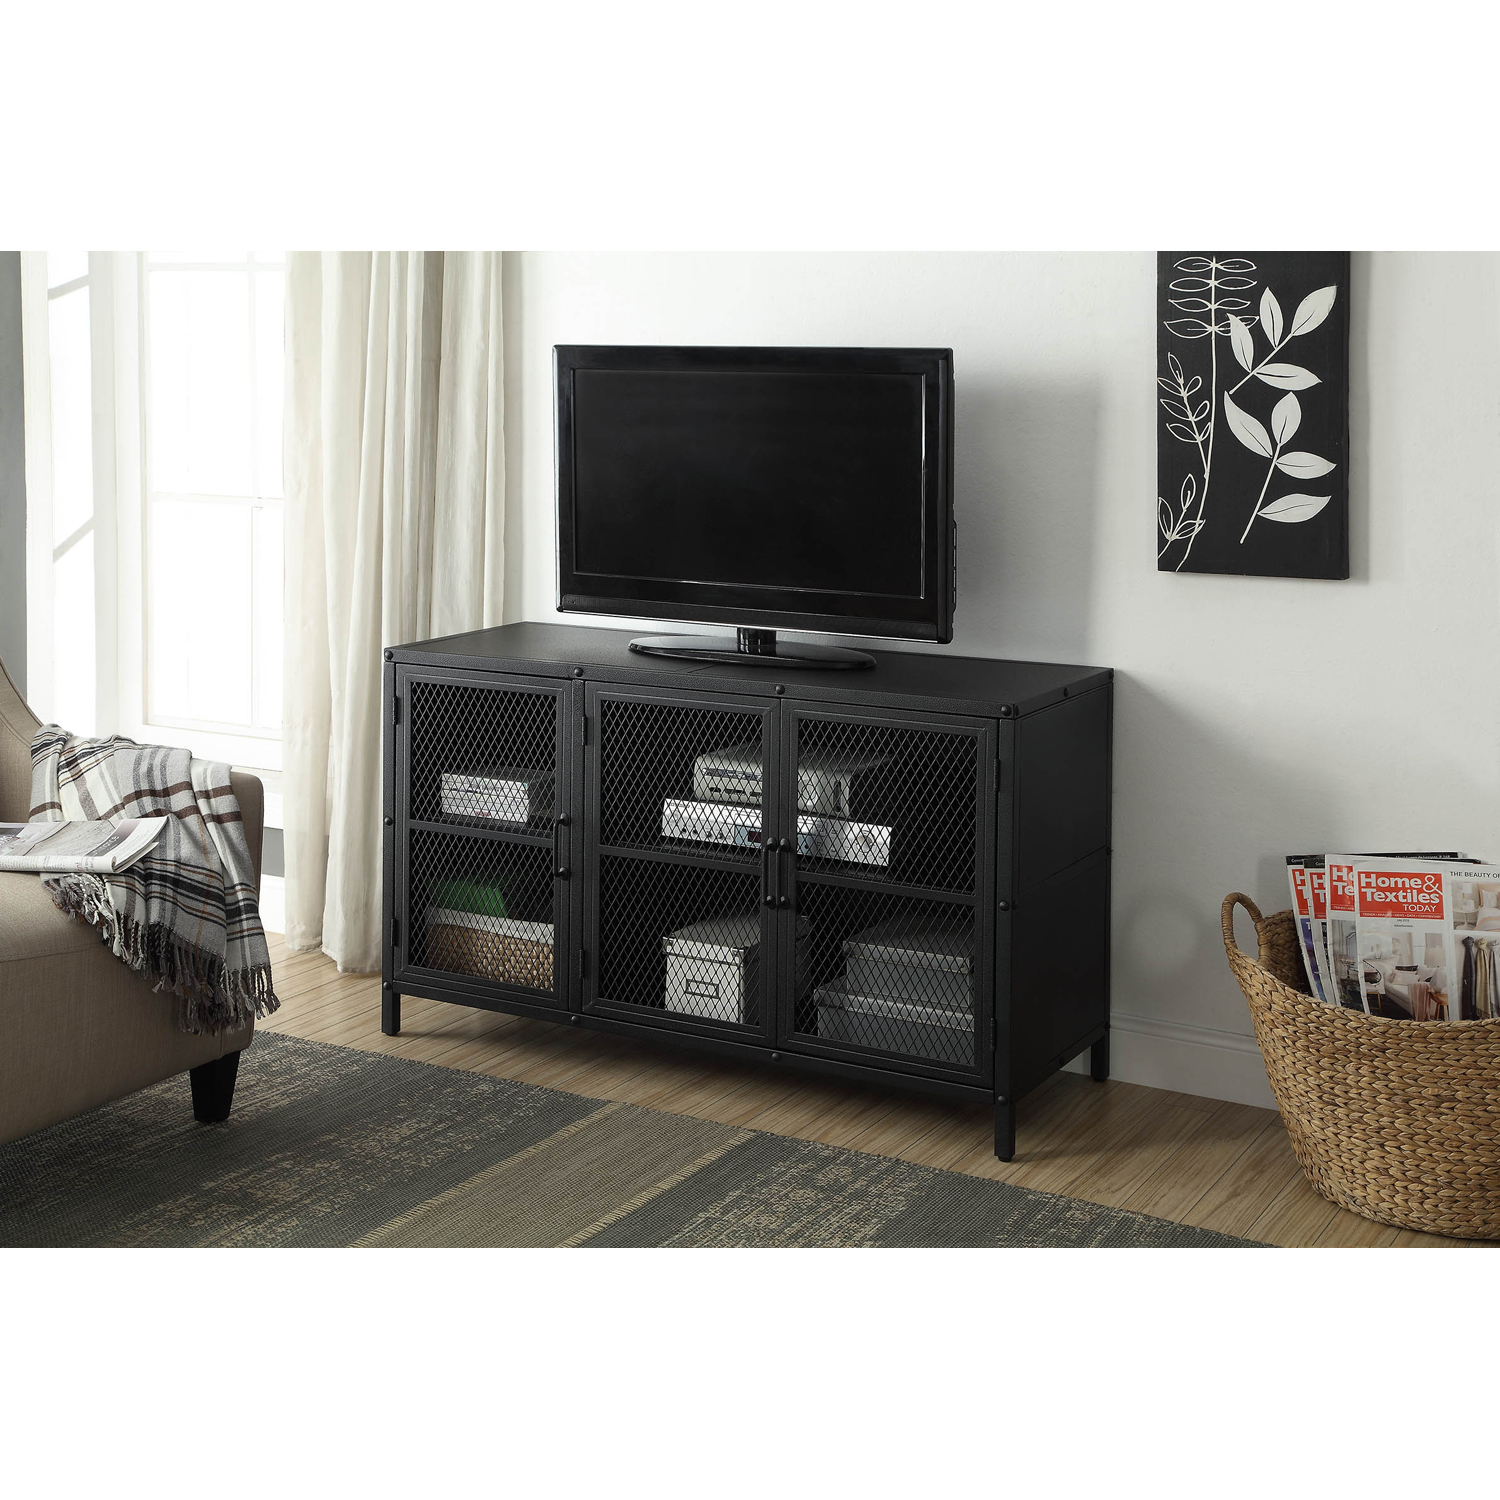 Better Homes & Gardens Industrial TV Stand Cabinet